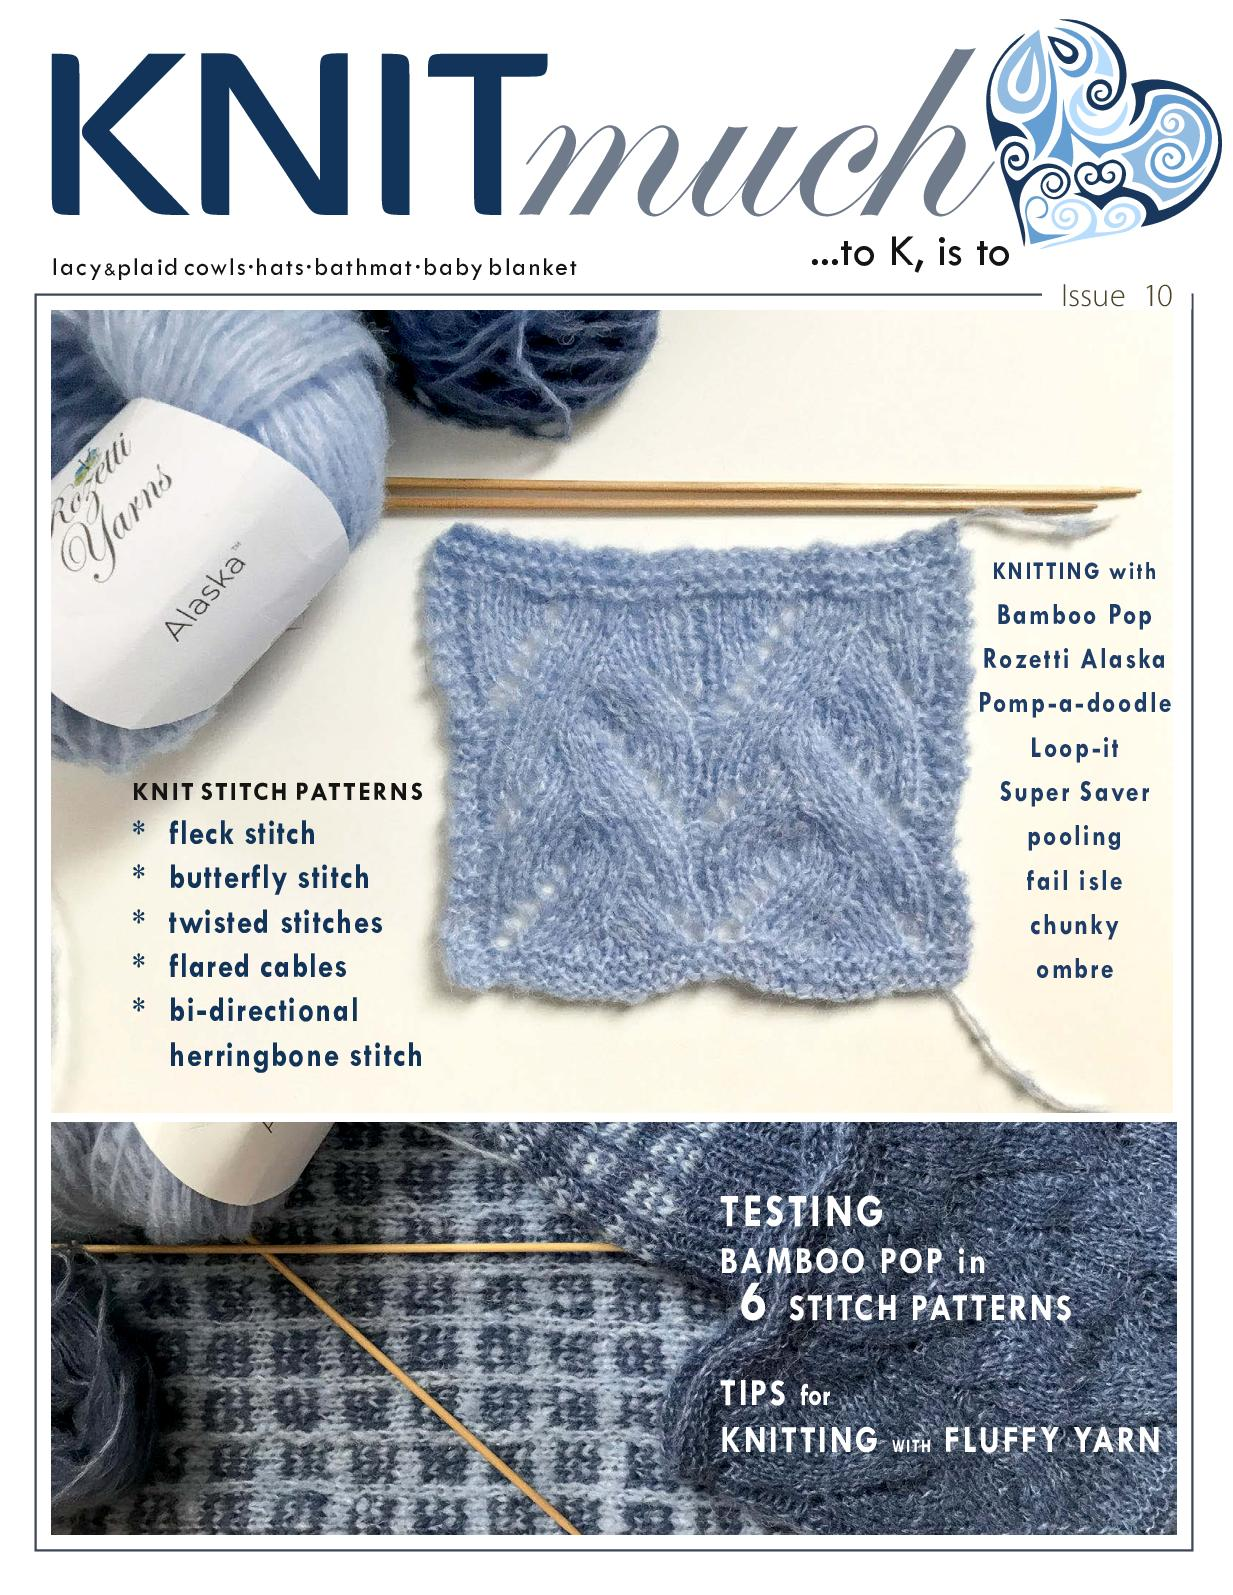 Calameo Knitmuch Issue 10